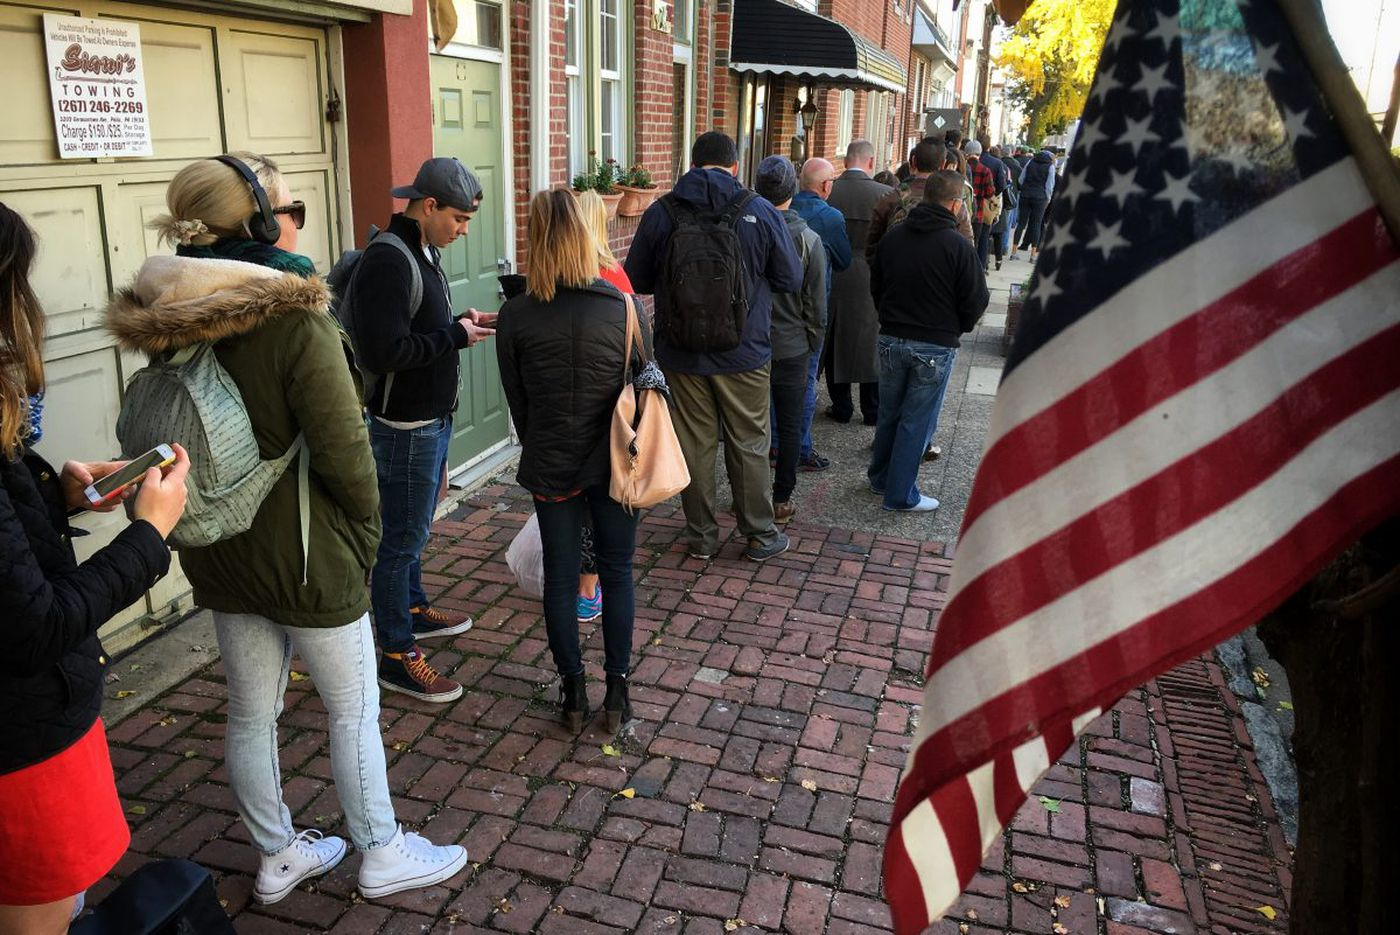 To ensure fair elections in Pa., keep voting technology up to date | Commentary